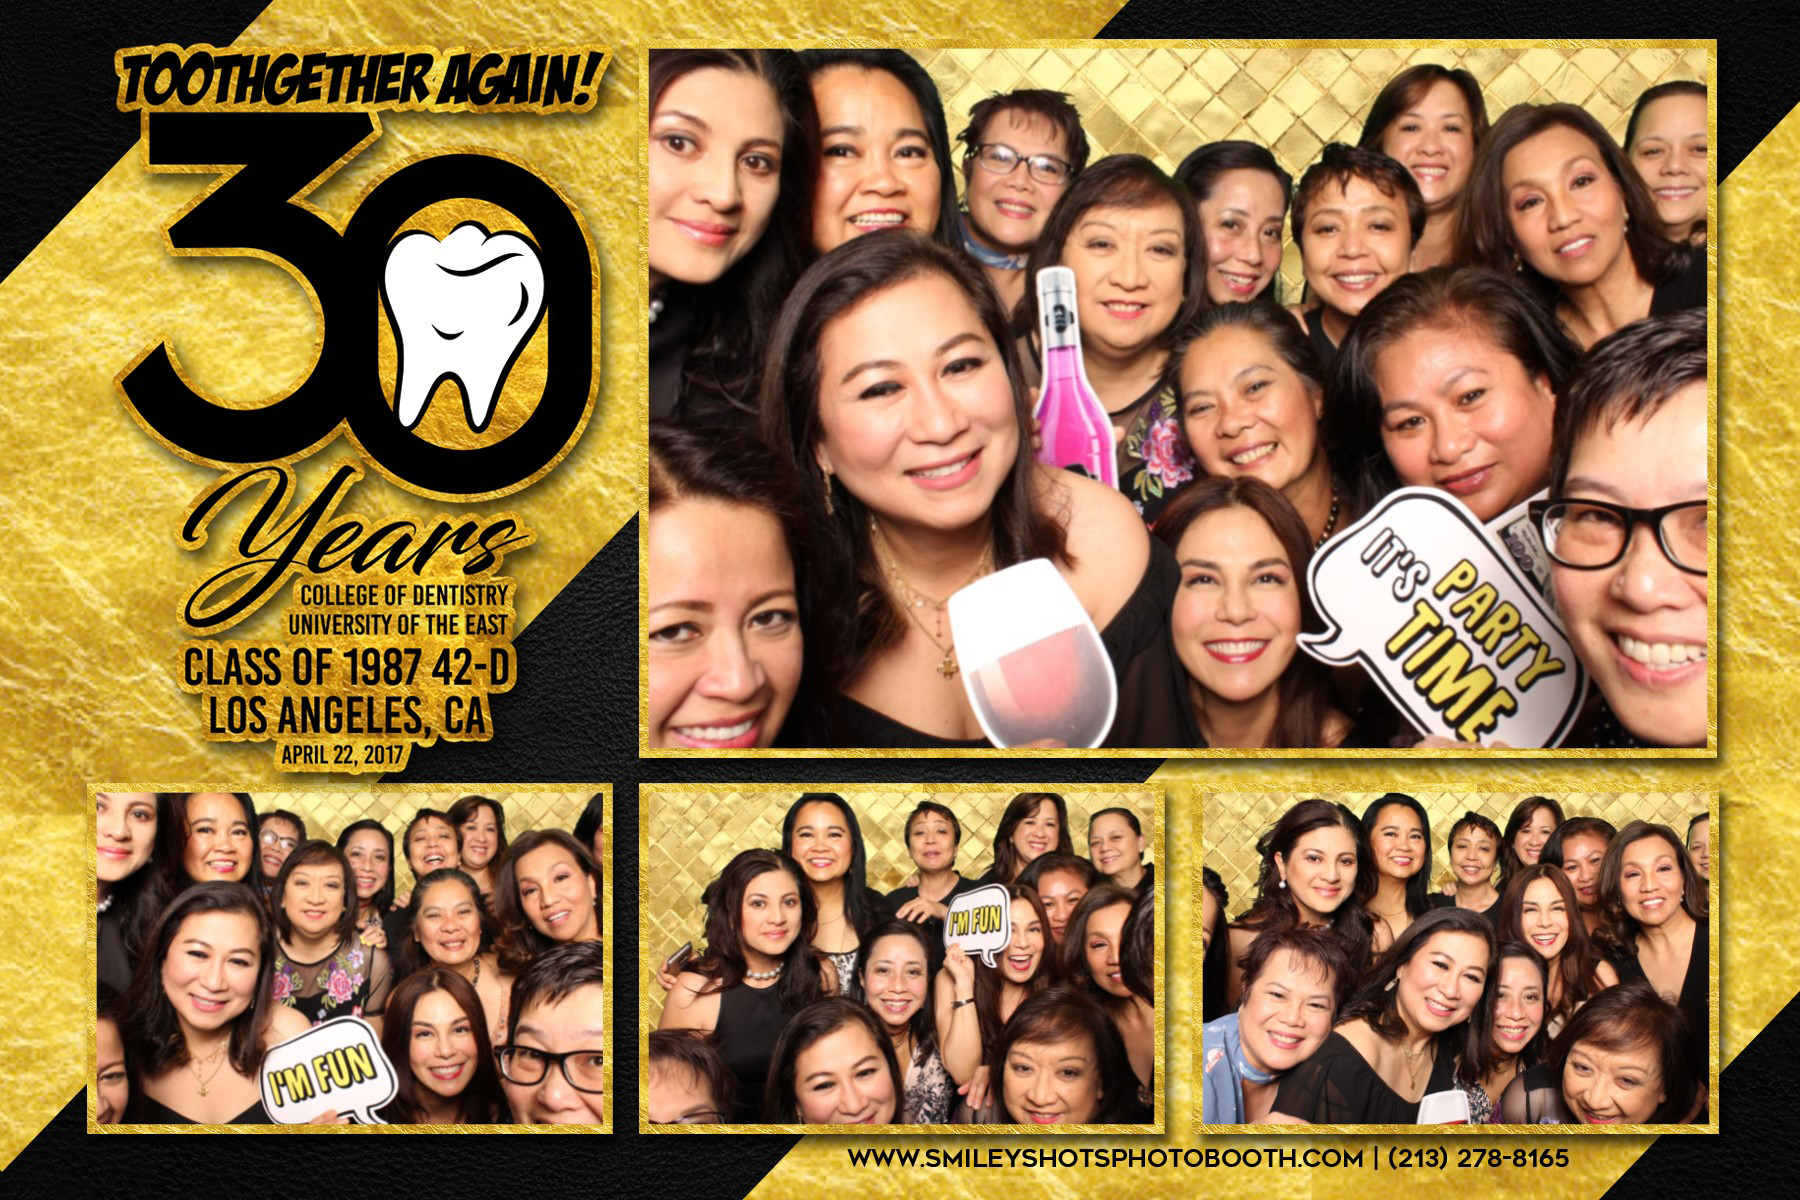 30th Years Dental UE Smiley Shots Photo Booth Photobooth (13).png